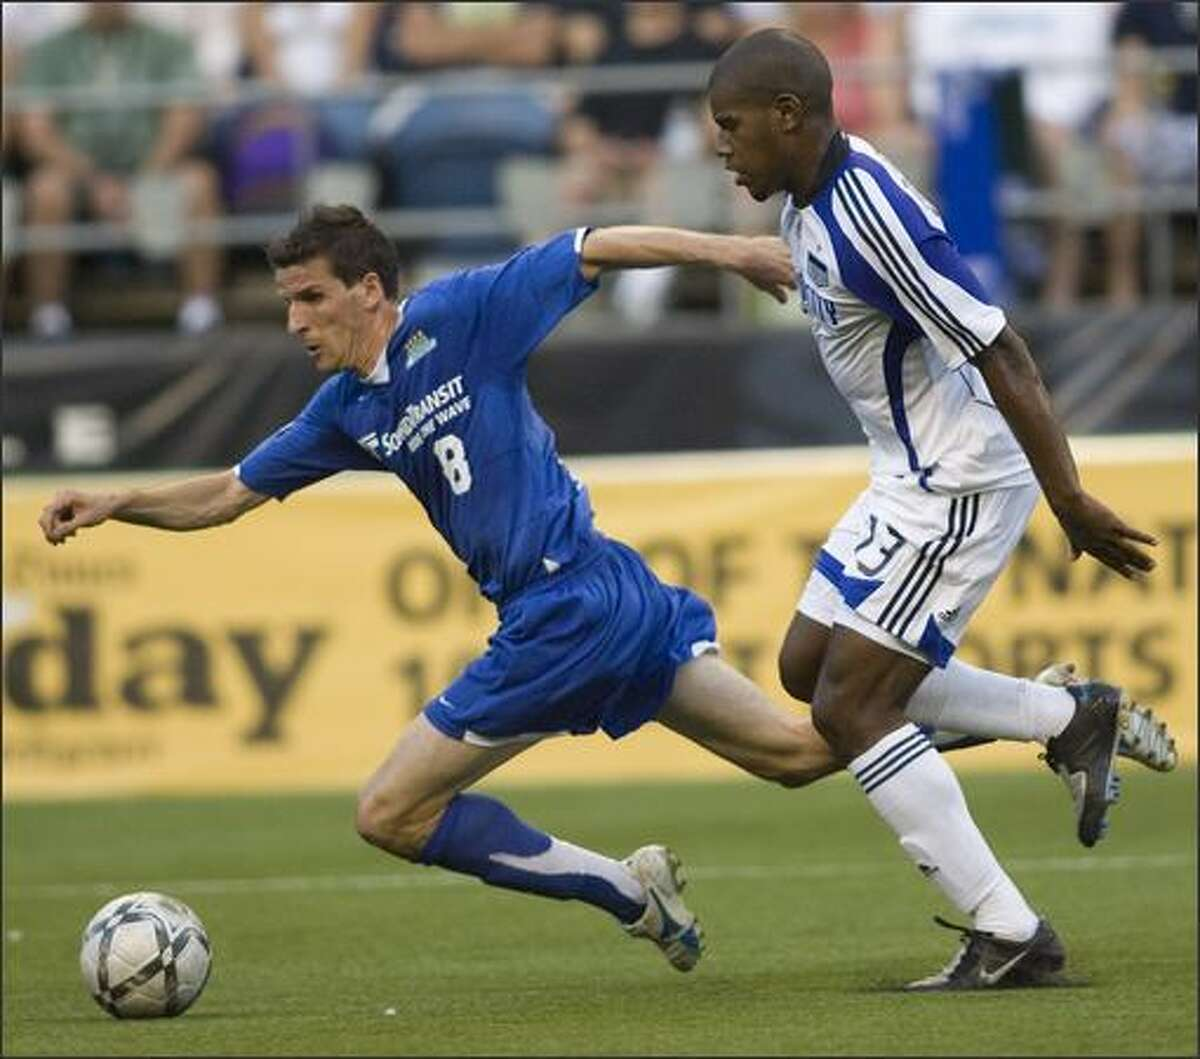 Seattle Sounders forward Sebastien Le Toux, left, falls to the Qwest Field turf under pressure from Rauwshan McKenzie of the Kansas City Wizards during their Lamar Hunt U.S. Open Cup quarterfinal match Tuesday night.